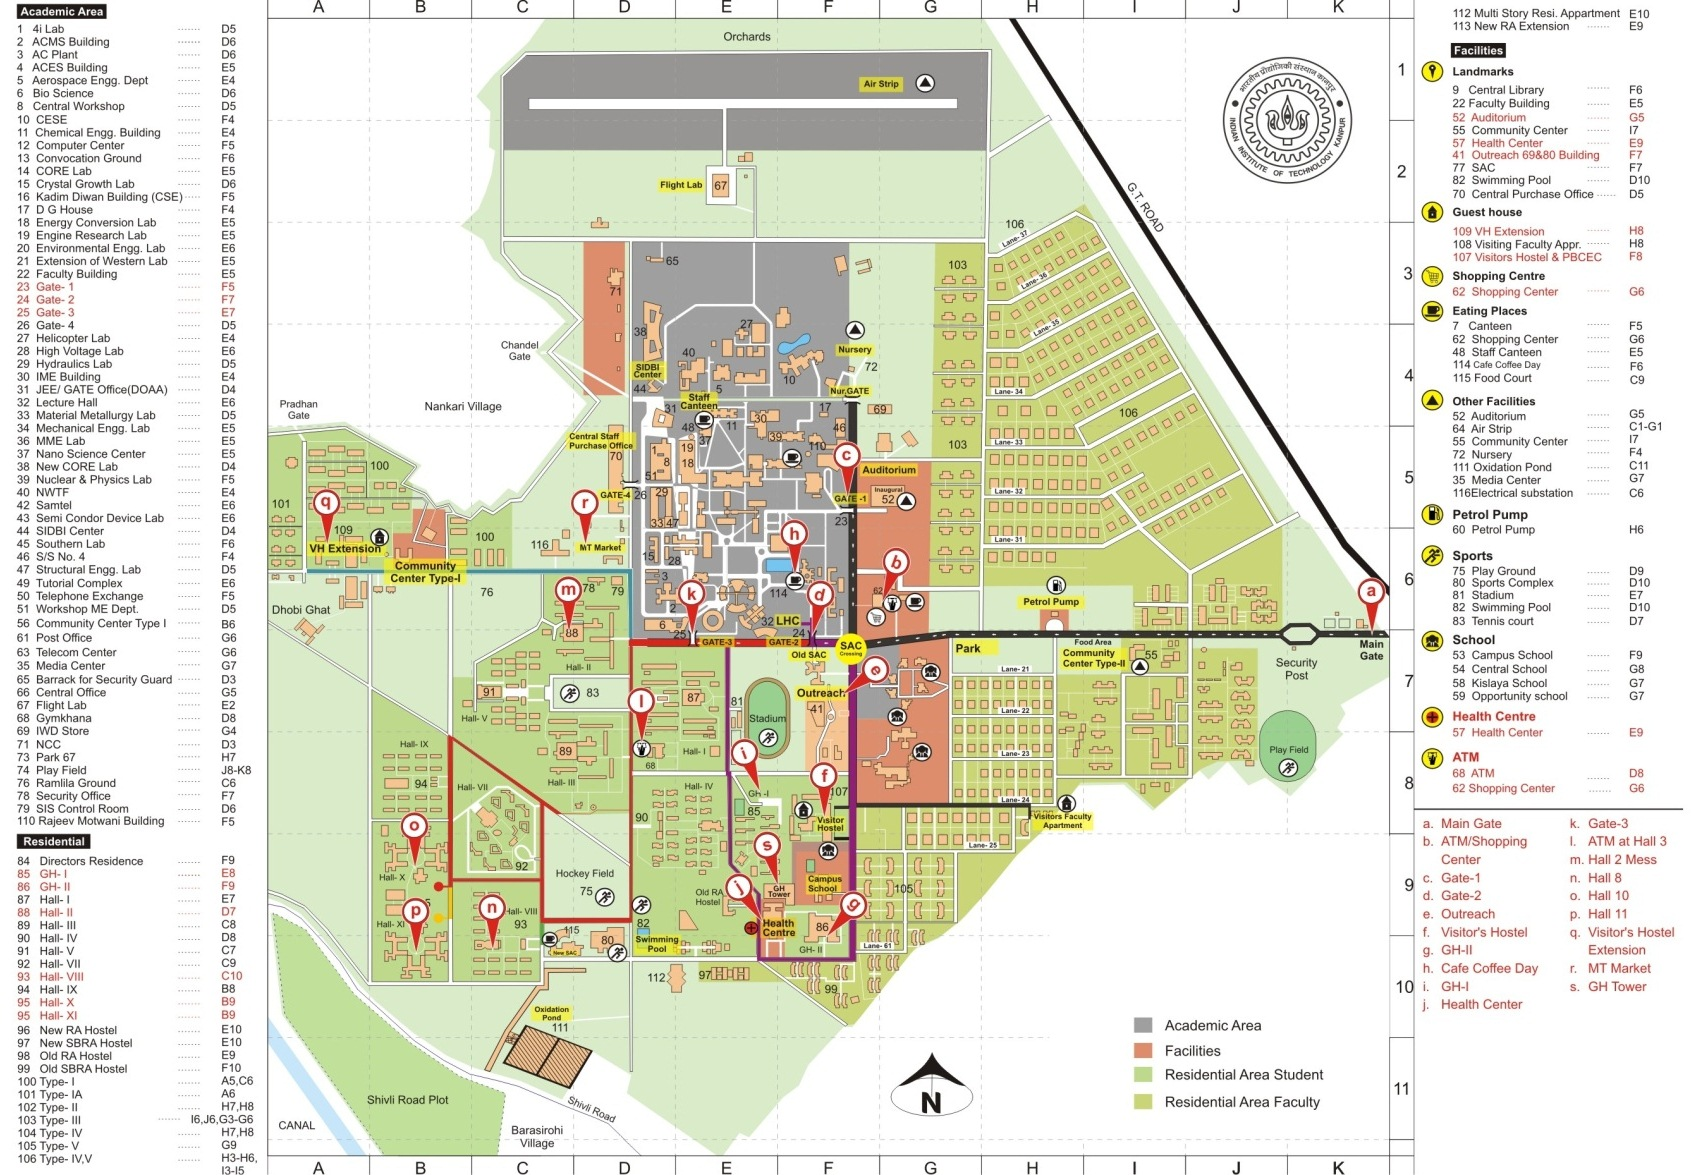 iit kanpur campus map Ncc 2014 iit kanpur campus map